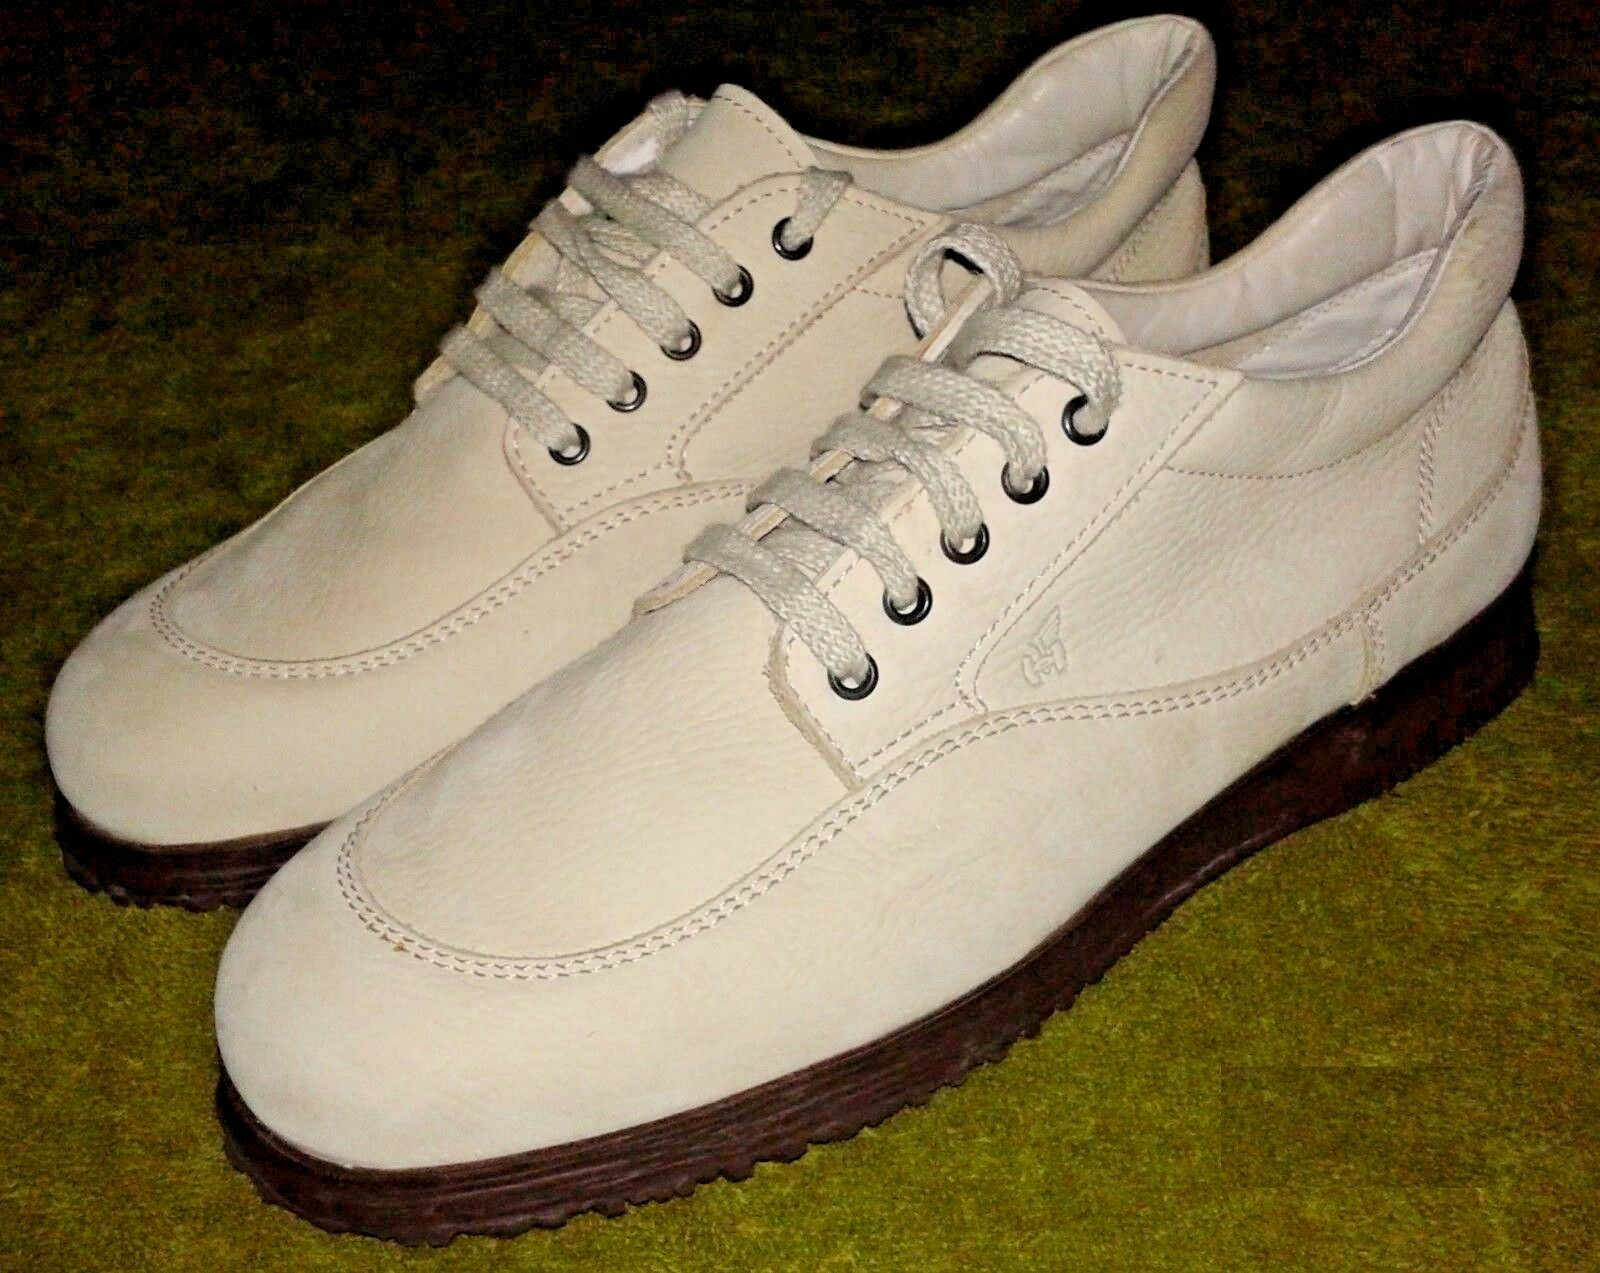 HOGAN  Schuhes HXM0F02SA500 Traditional Lace Up Casual Schuhes  - UK 11.5 a6113c